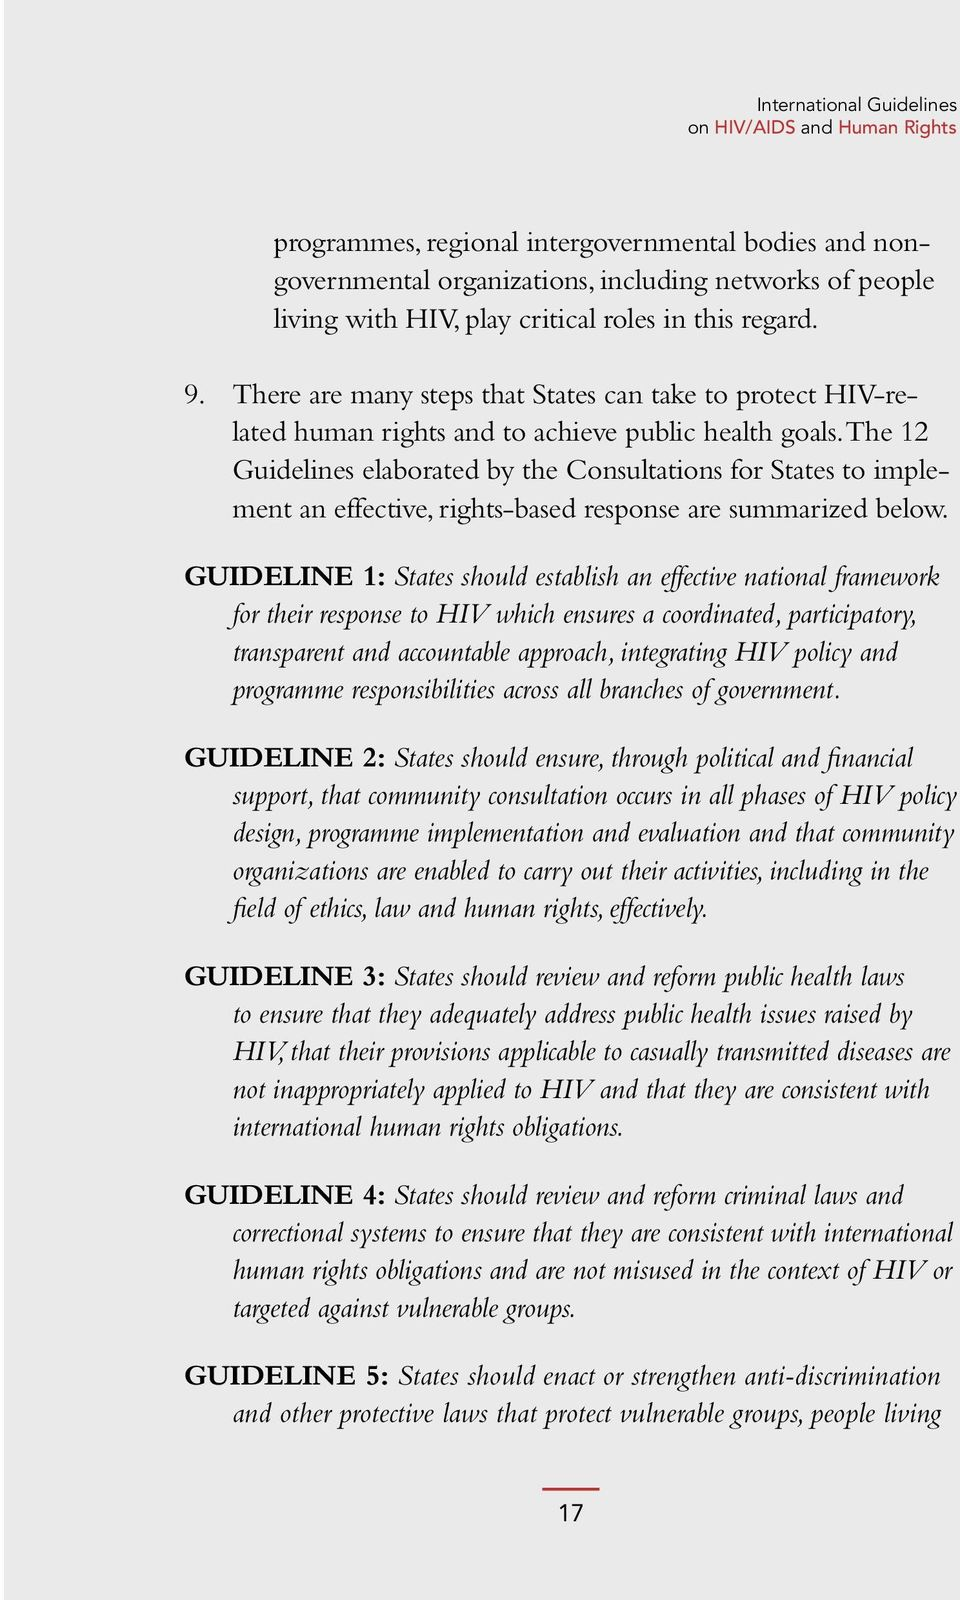 The 12 Guidelines elaborated by the Consultations for States to implement an effective, rights-based response are summarized below.